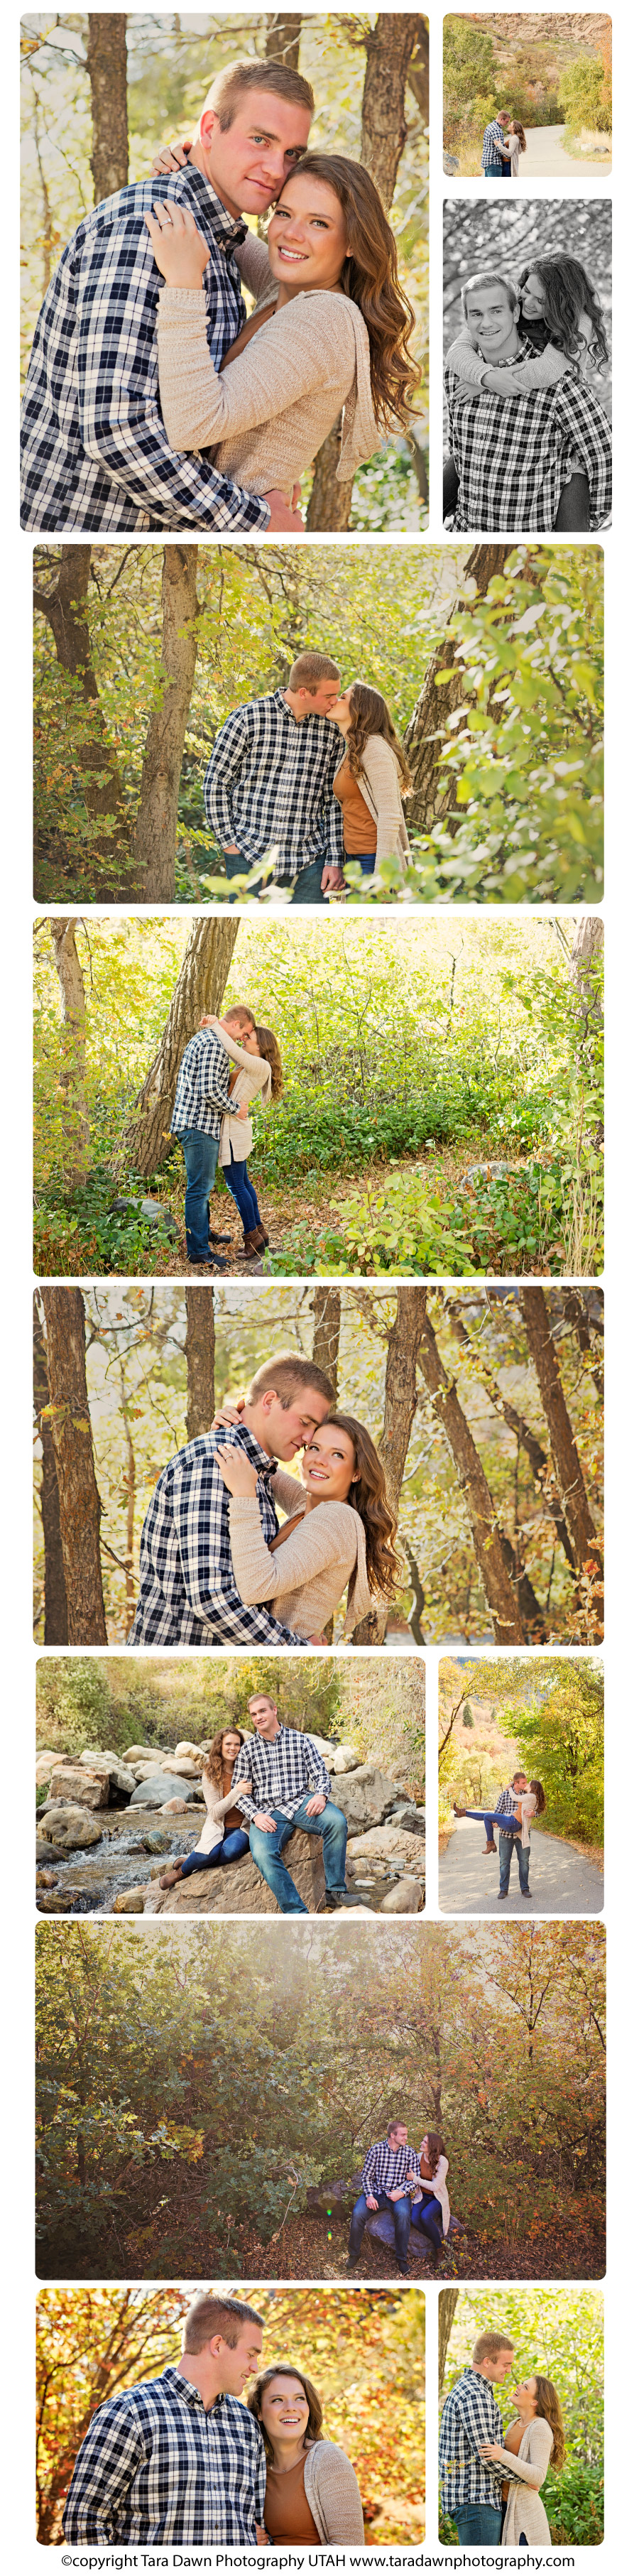 utah_engagement_wedding_photography